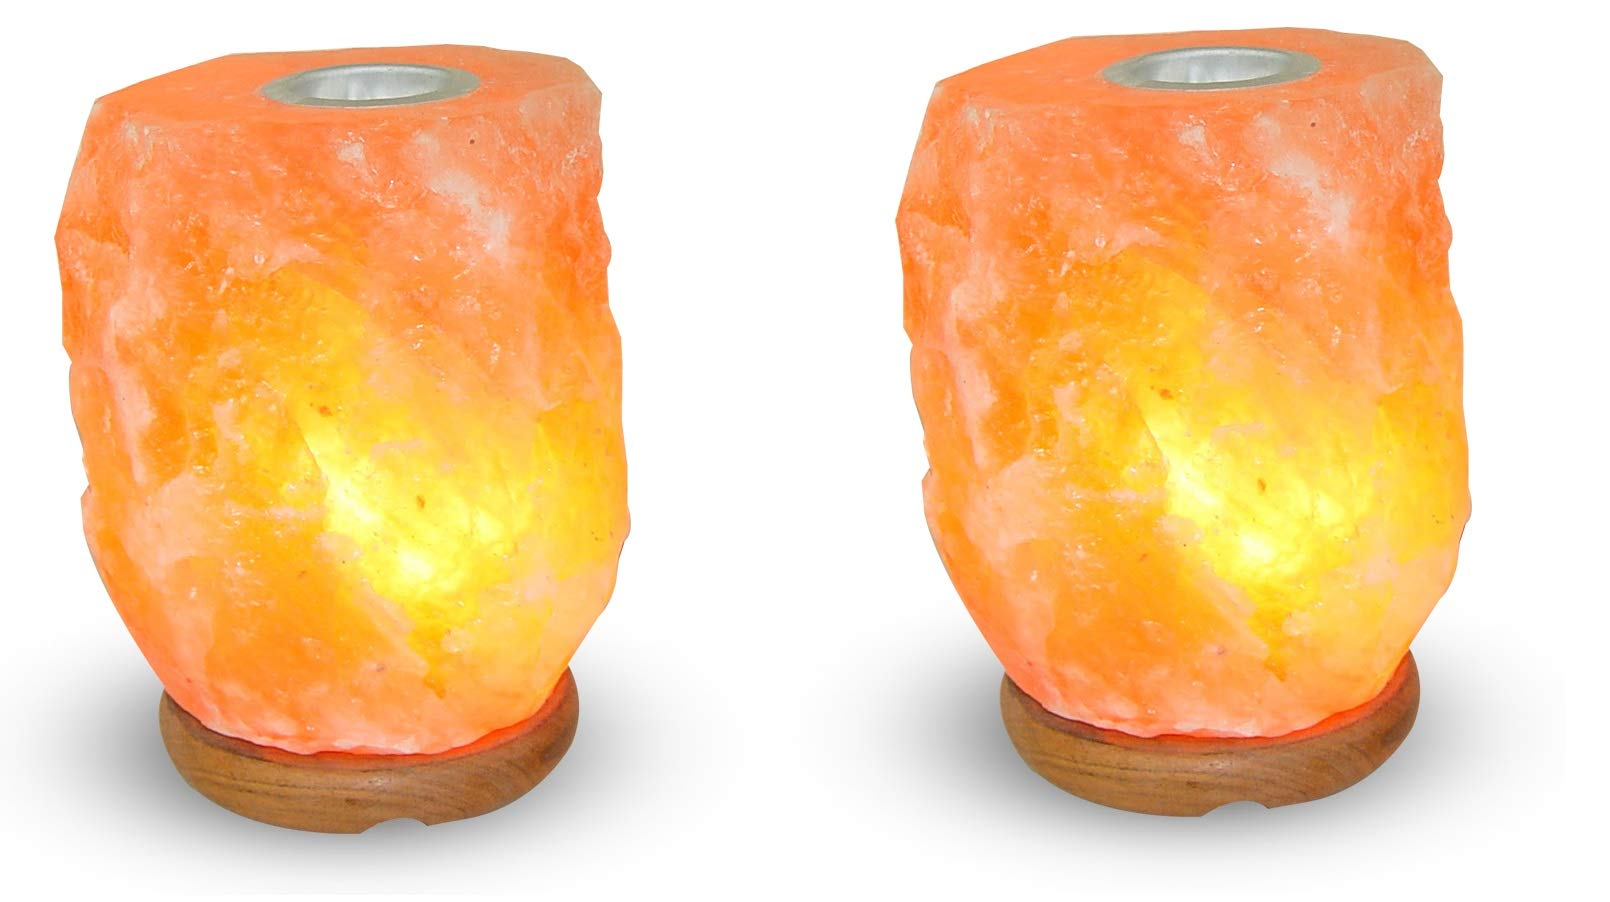 2 Pack - Salt GEMS Salt Lamp Aromatherapy Natural Himalayan Rock Salt with Small Plate to Diffuse Essential Oils, Size 4~6 lbs, 8~9 inch